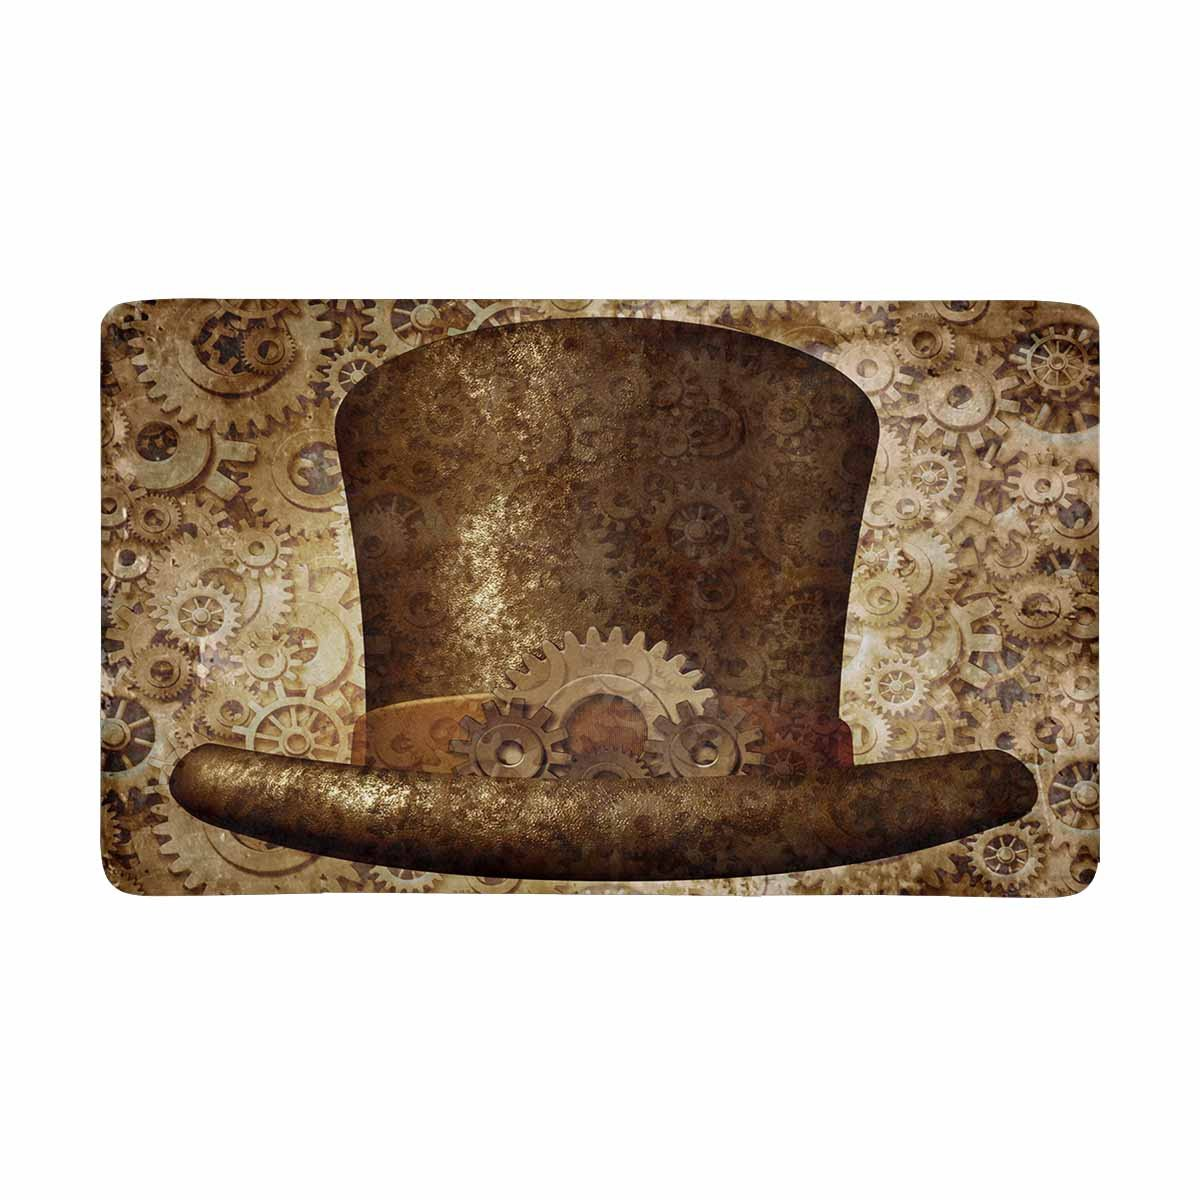 MKHERT Retro Steampunk Top Hat in Metal Copper Gears and Cogs Doormat Rug Home Decor Floor Mat Bath Mat 30x18 inch